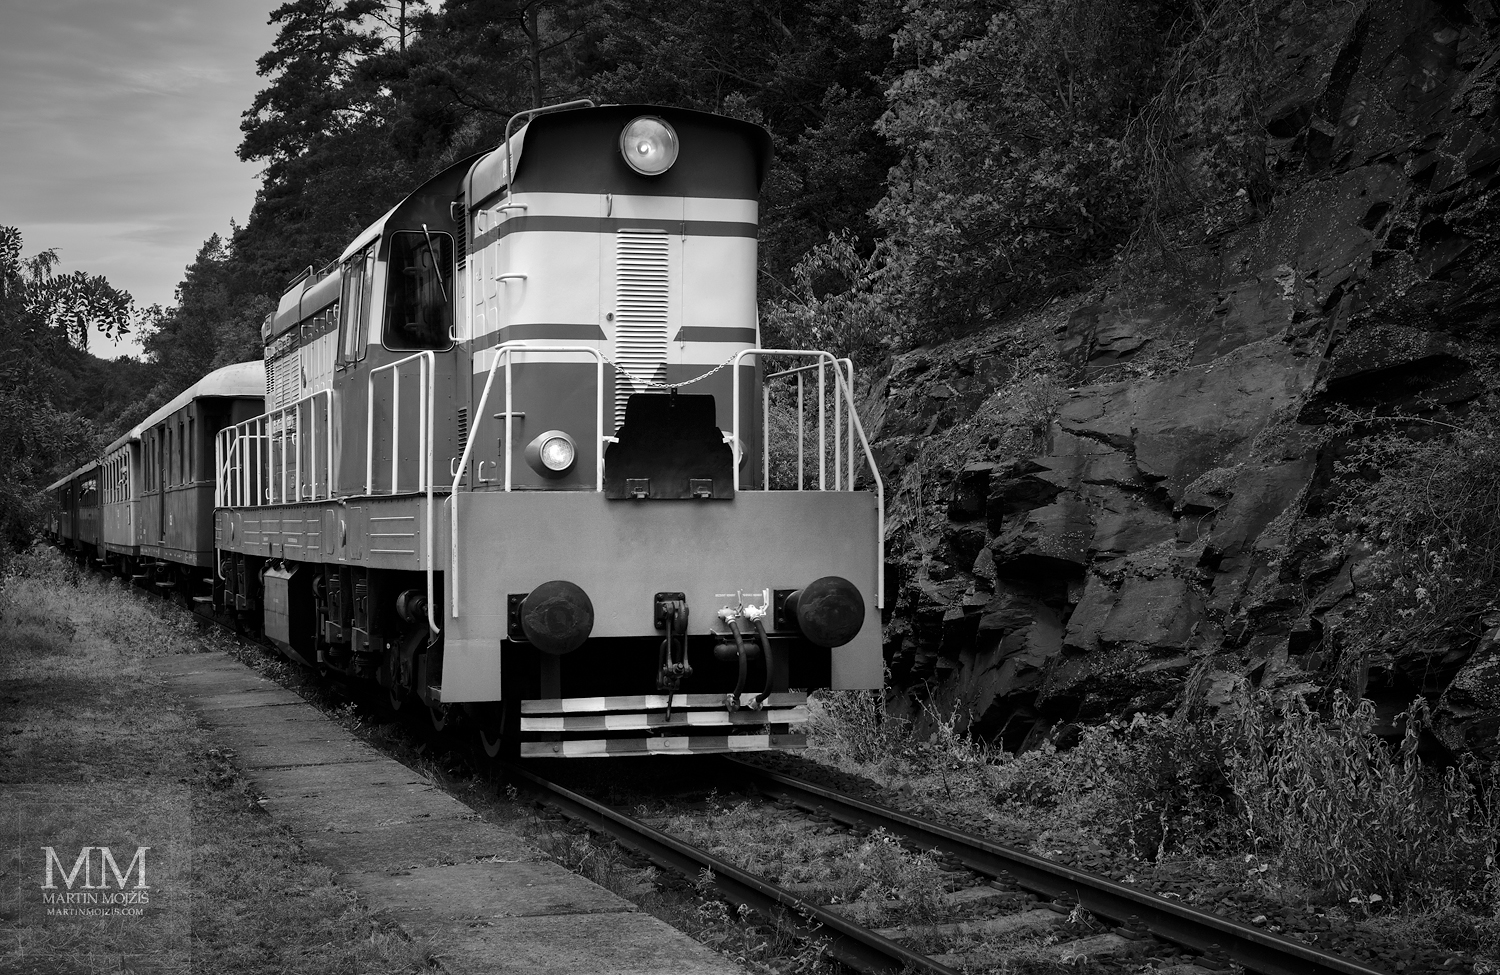 Fine Art black and white photograph of diesel locomotive in head of passenger train. Martin Mojzis.